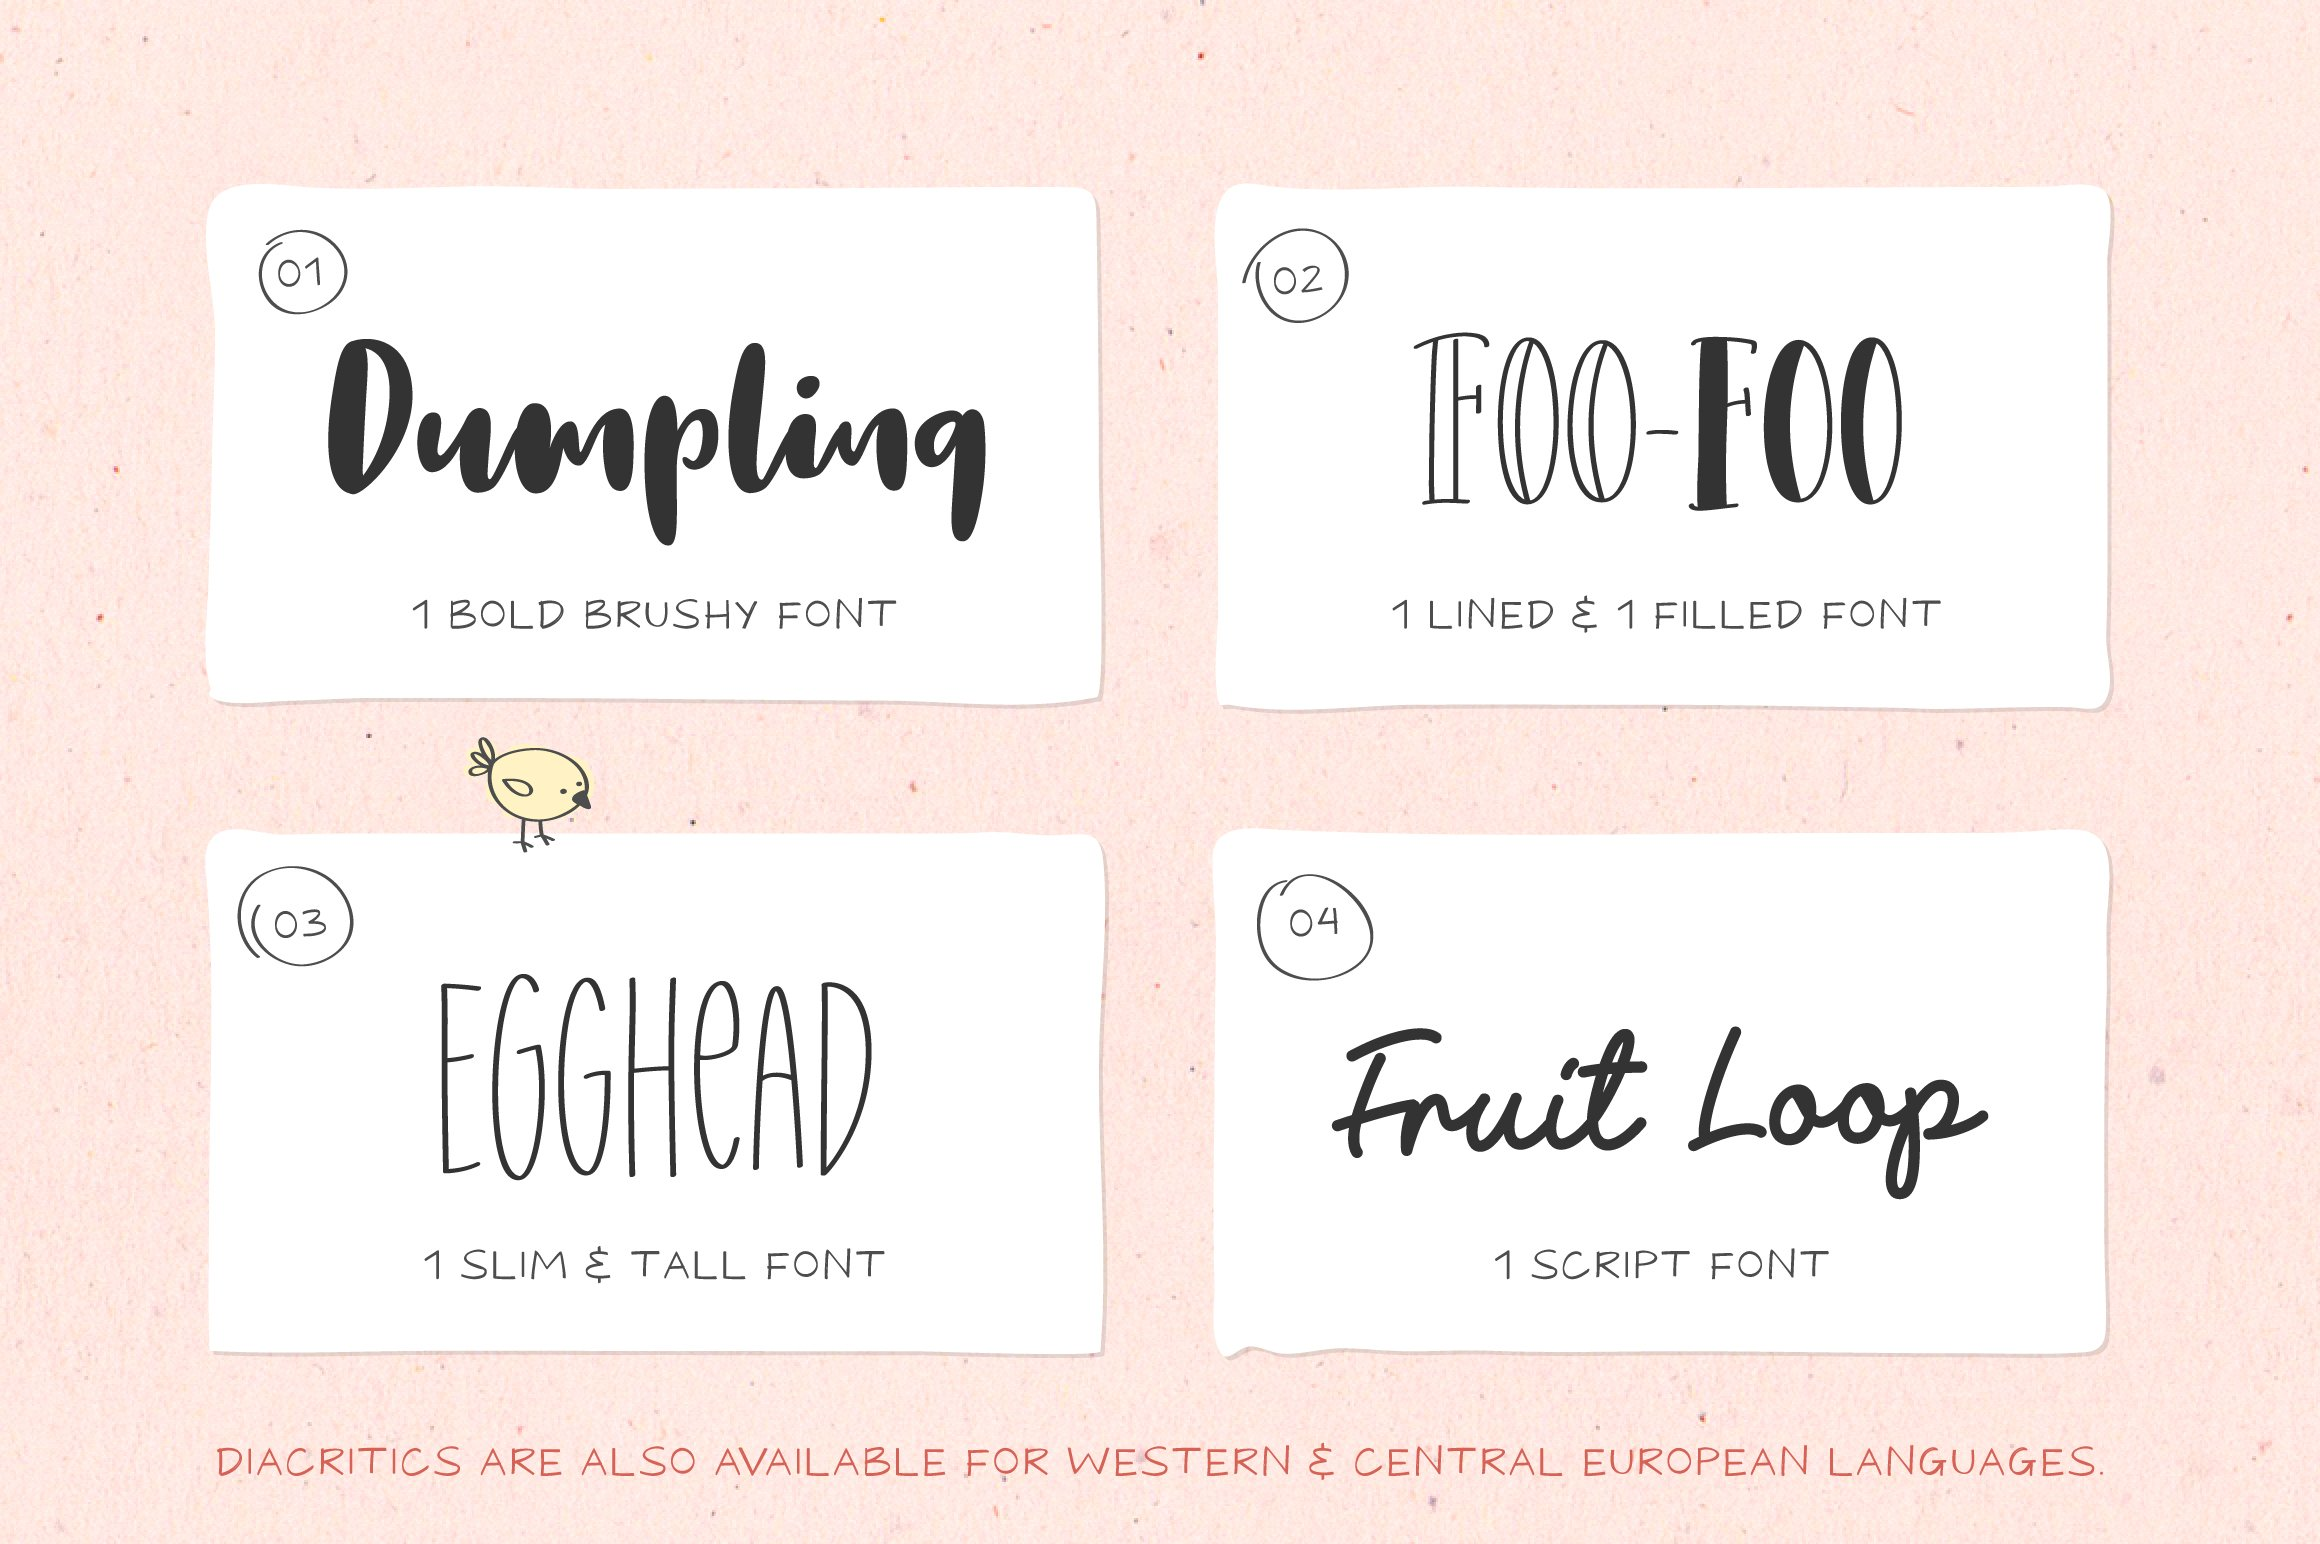 Download Handwritten Font Pack & Extras - Graphic Delivery - A ...